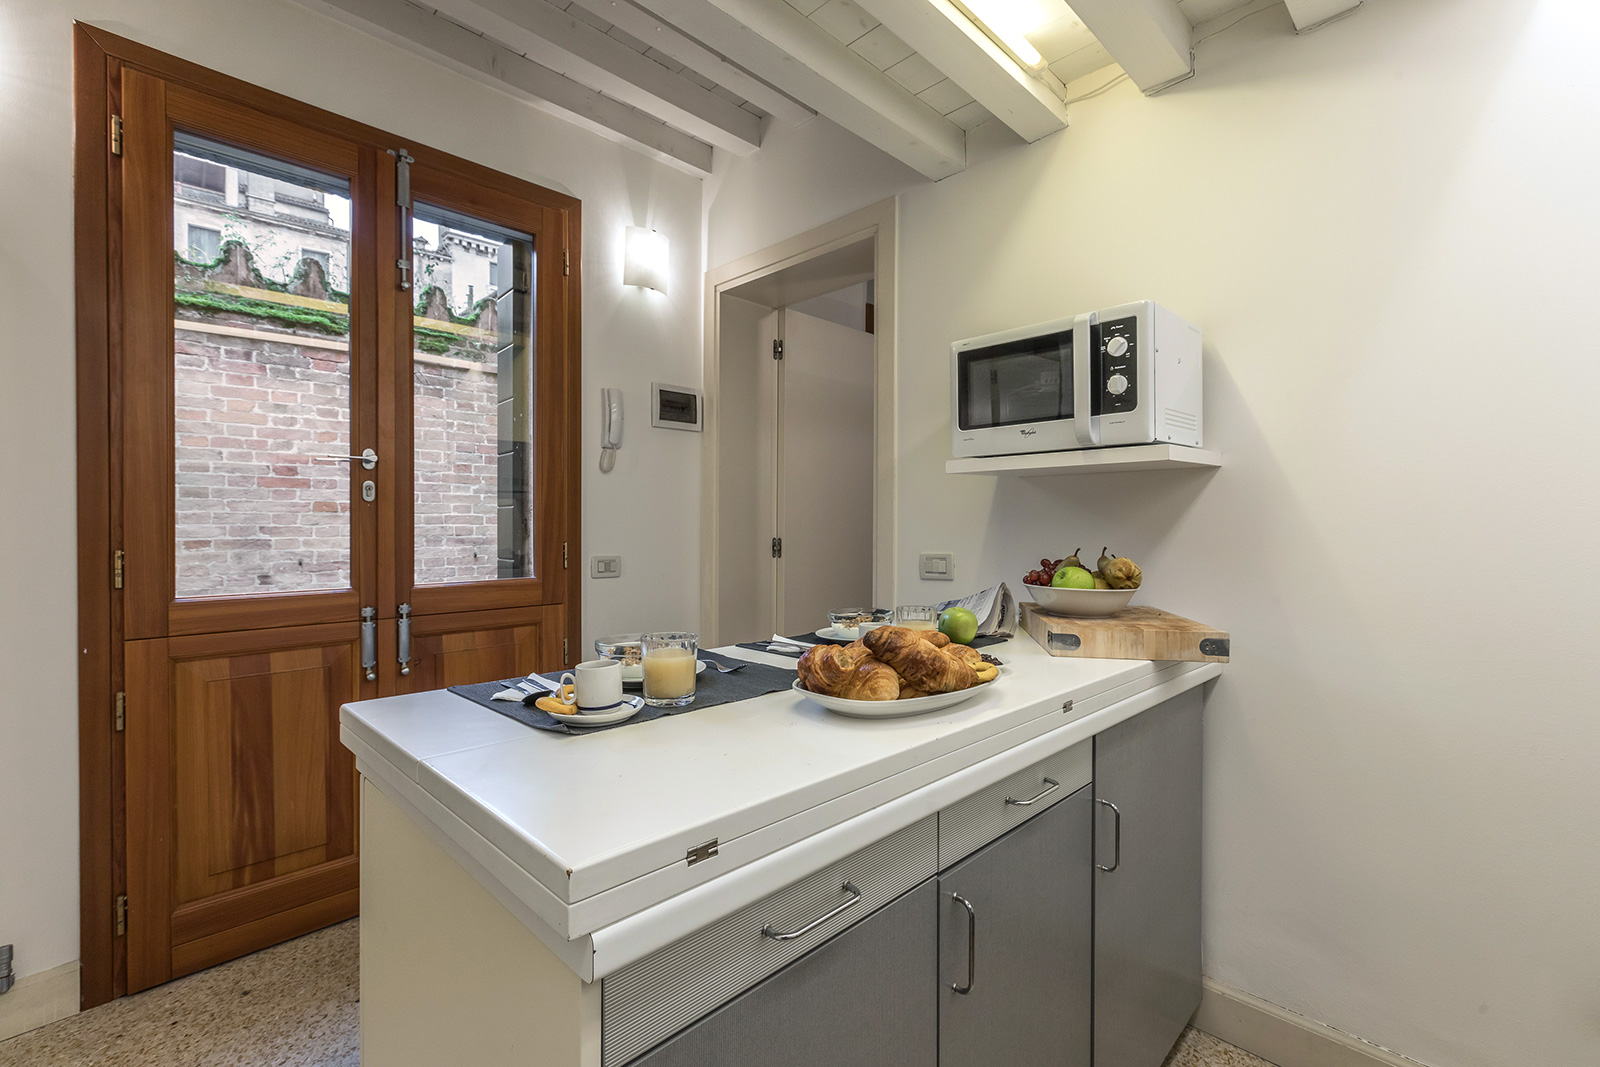 the main entrance of the apartment is from the kitchen